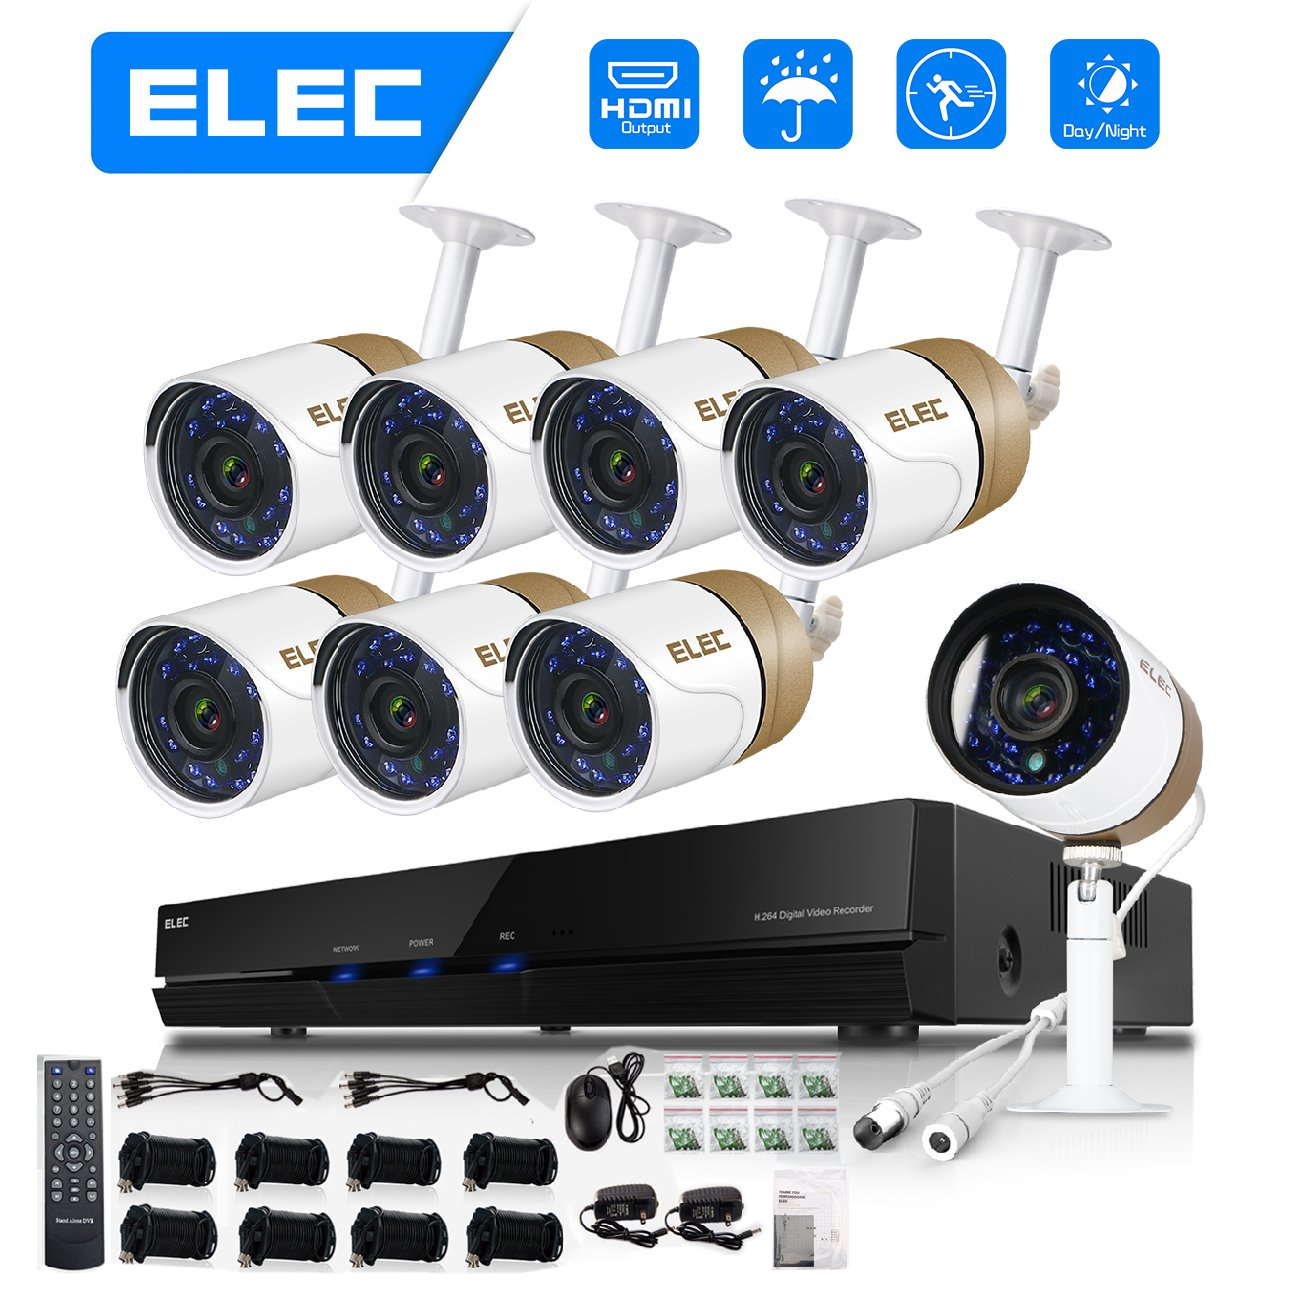 ELEC 8CH HDMI 960H DVR 1500TVL Outdoor Indoor Day Night IR-CUT CCTV Surveillance Home Video Security Camera System ,8 Weatherproof Cameras 1.0MP, 65ft Night Vision, No Hard Drive by ELEC (Image #1)